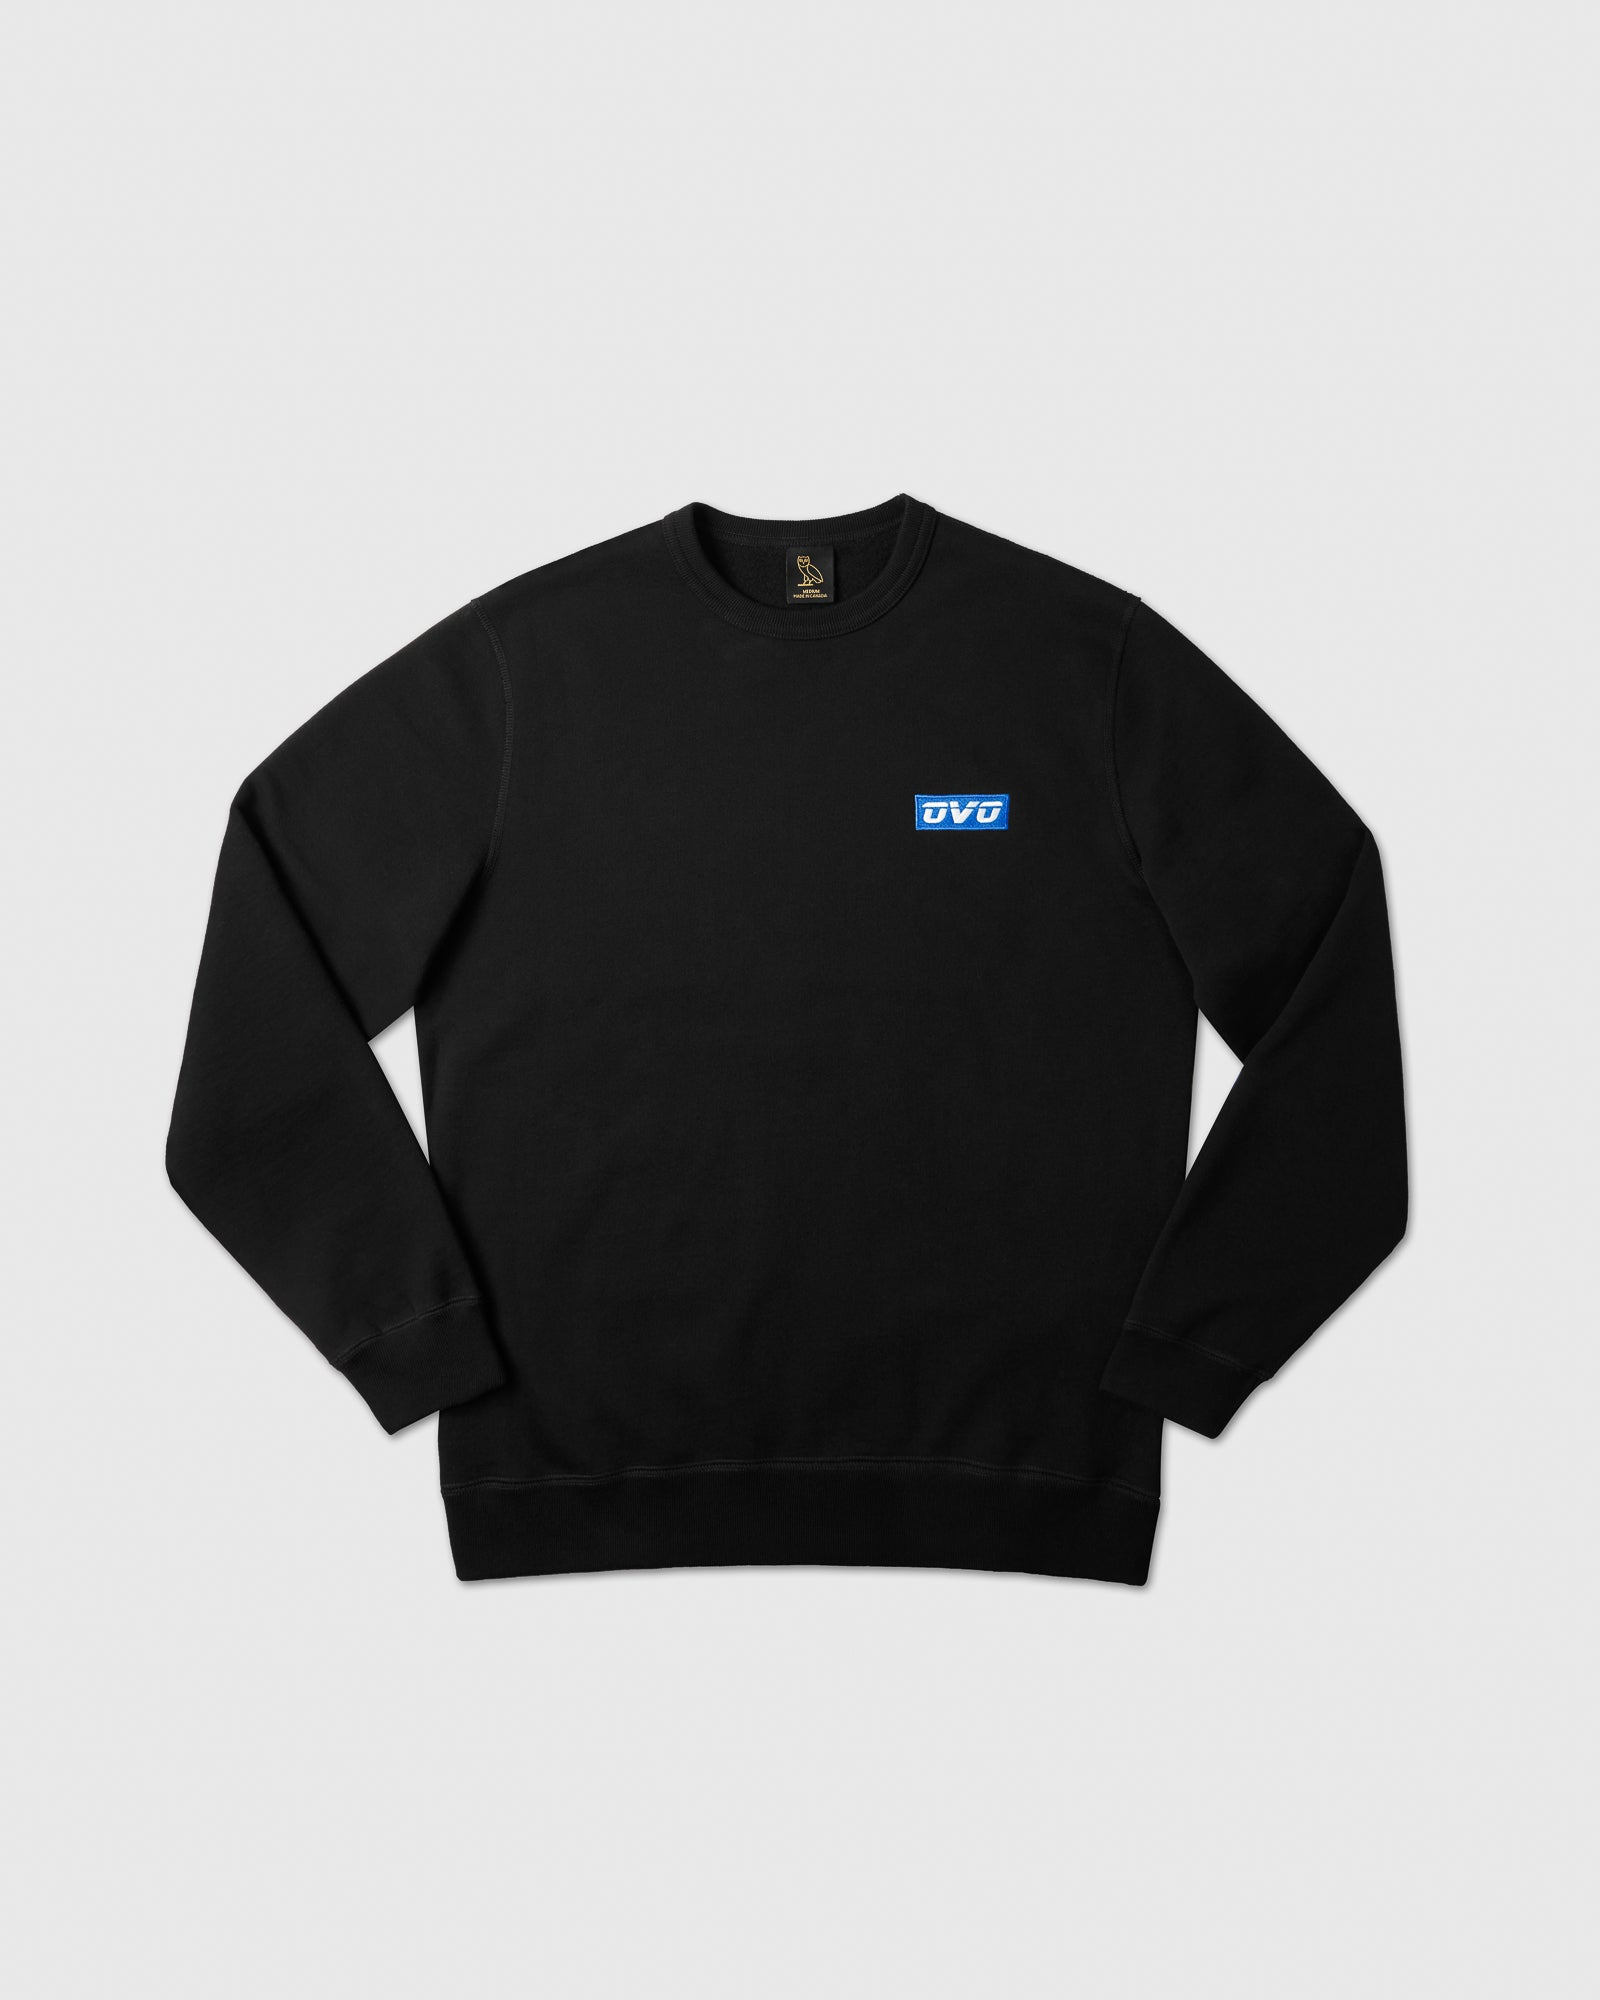 EMBROIDERED RUNNER LOGO CREWNECK - BLACK IMAGE #1